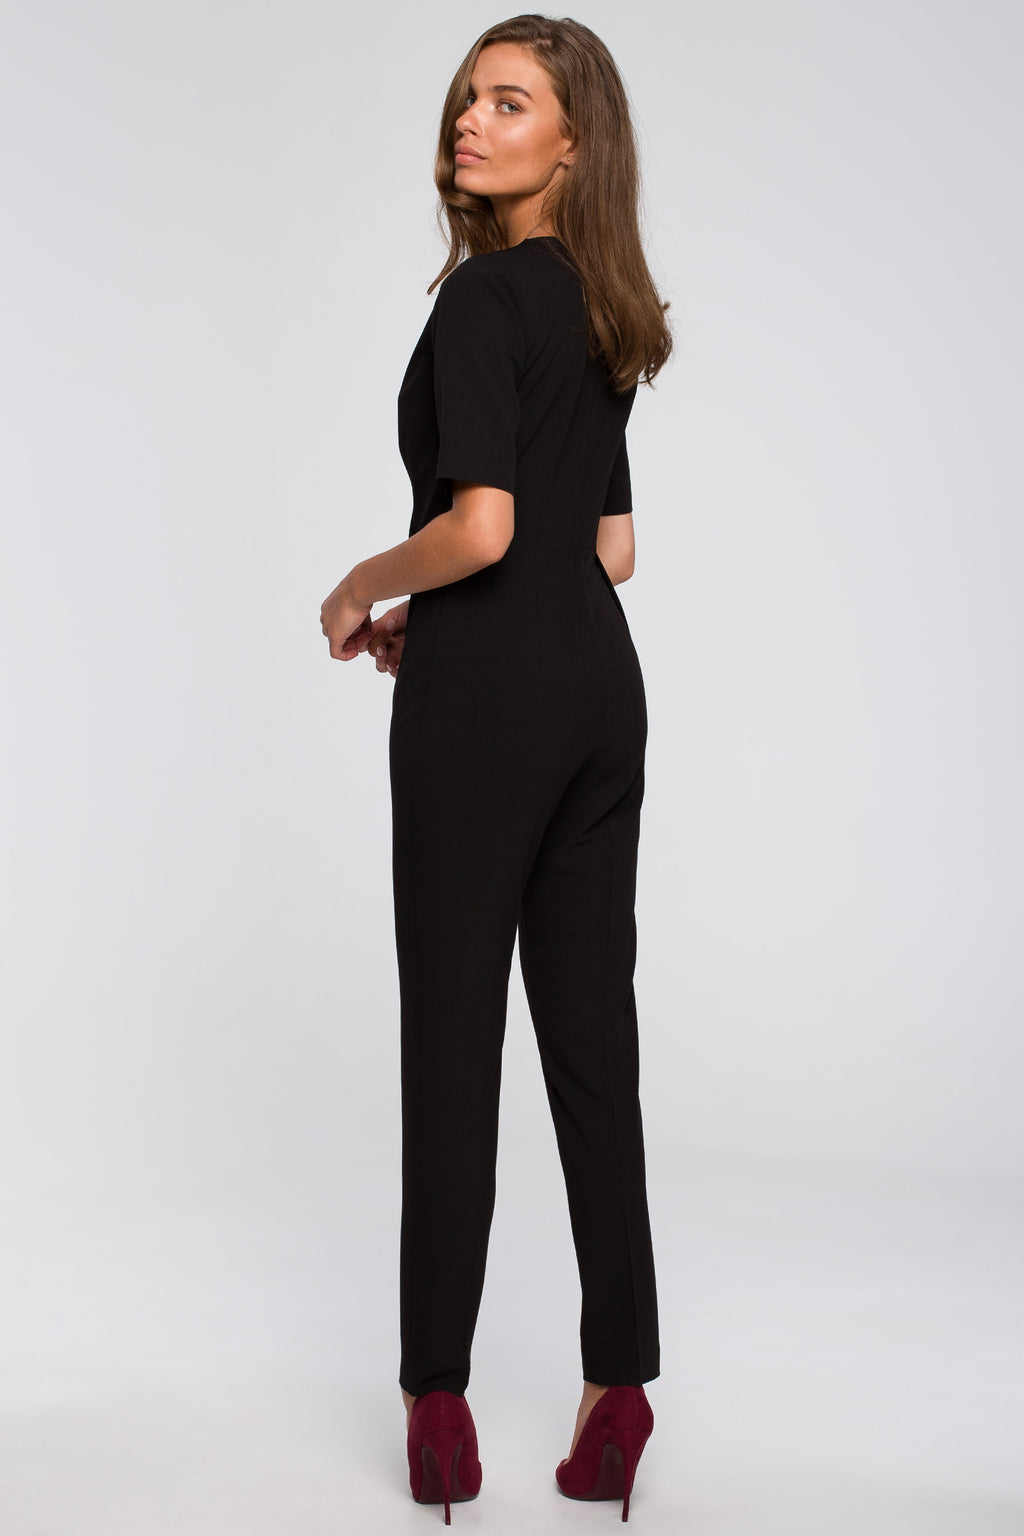 Black Jumpsuit With An Asymmetric Wrap Front - So Chic Boutique